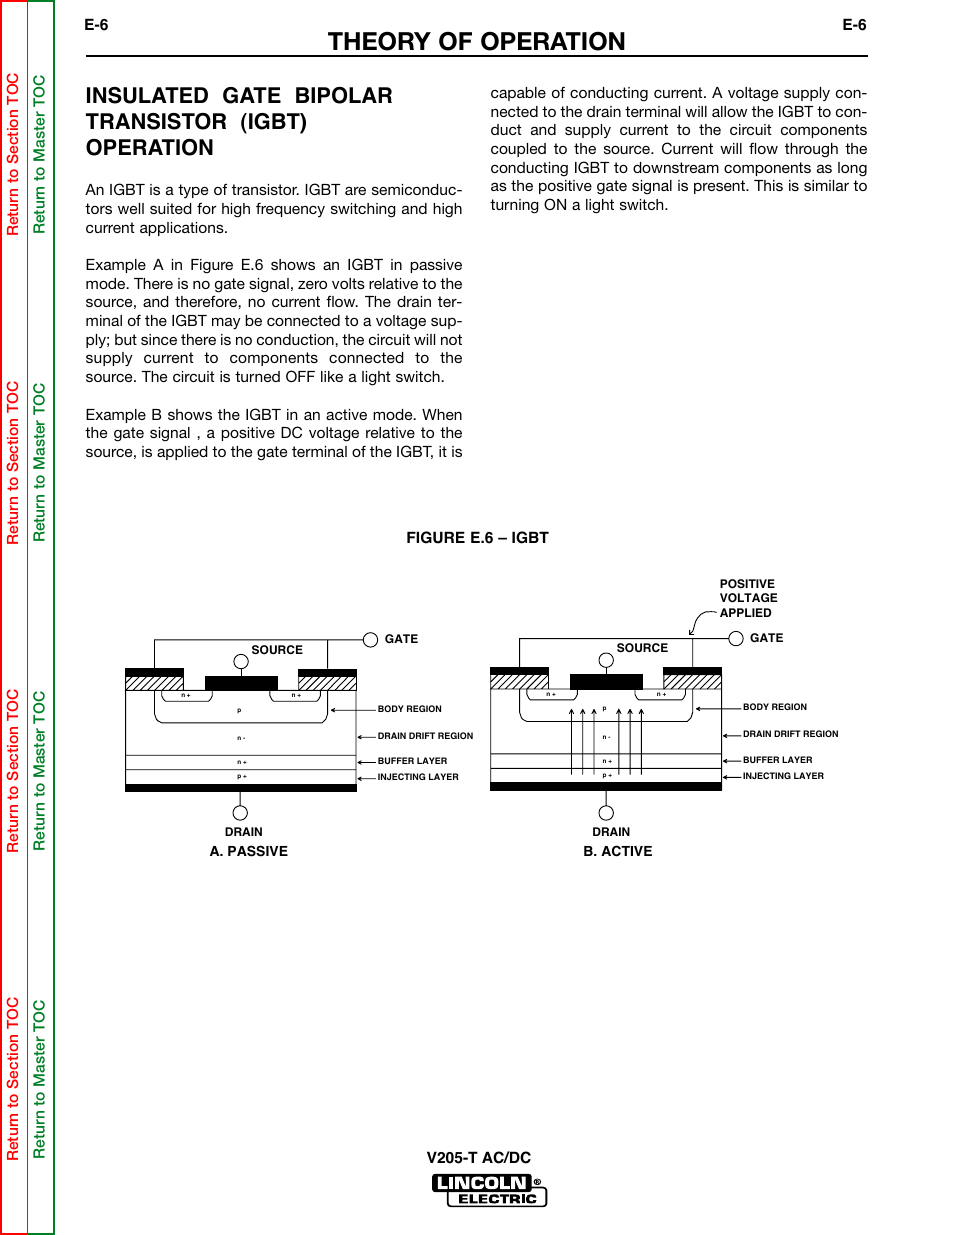 Theory Of Operation Insulated Gate Bipolar Transistor Igbt Switch Lincoln Electric Invertec V205 T User Manual Page 36 109